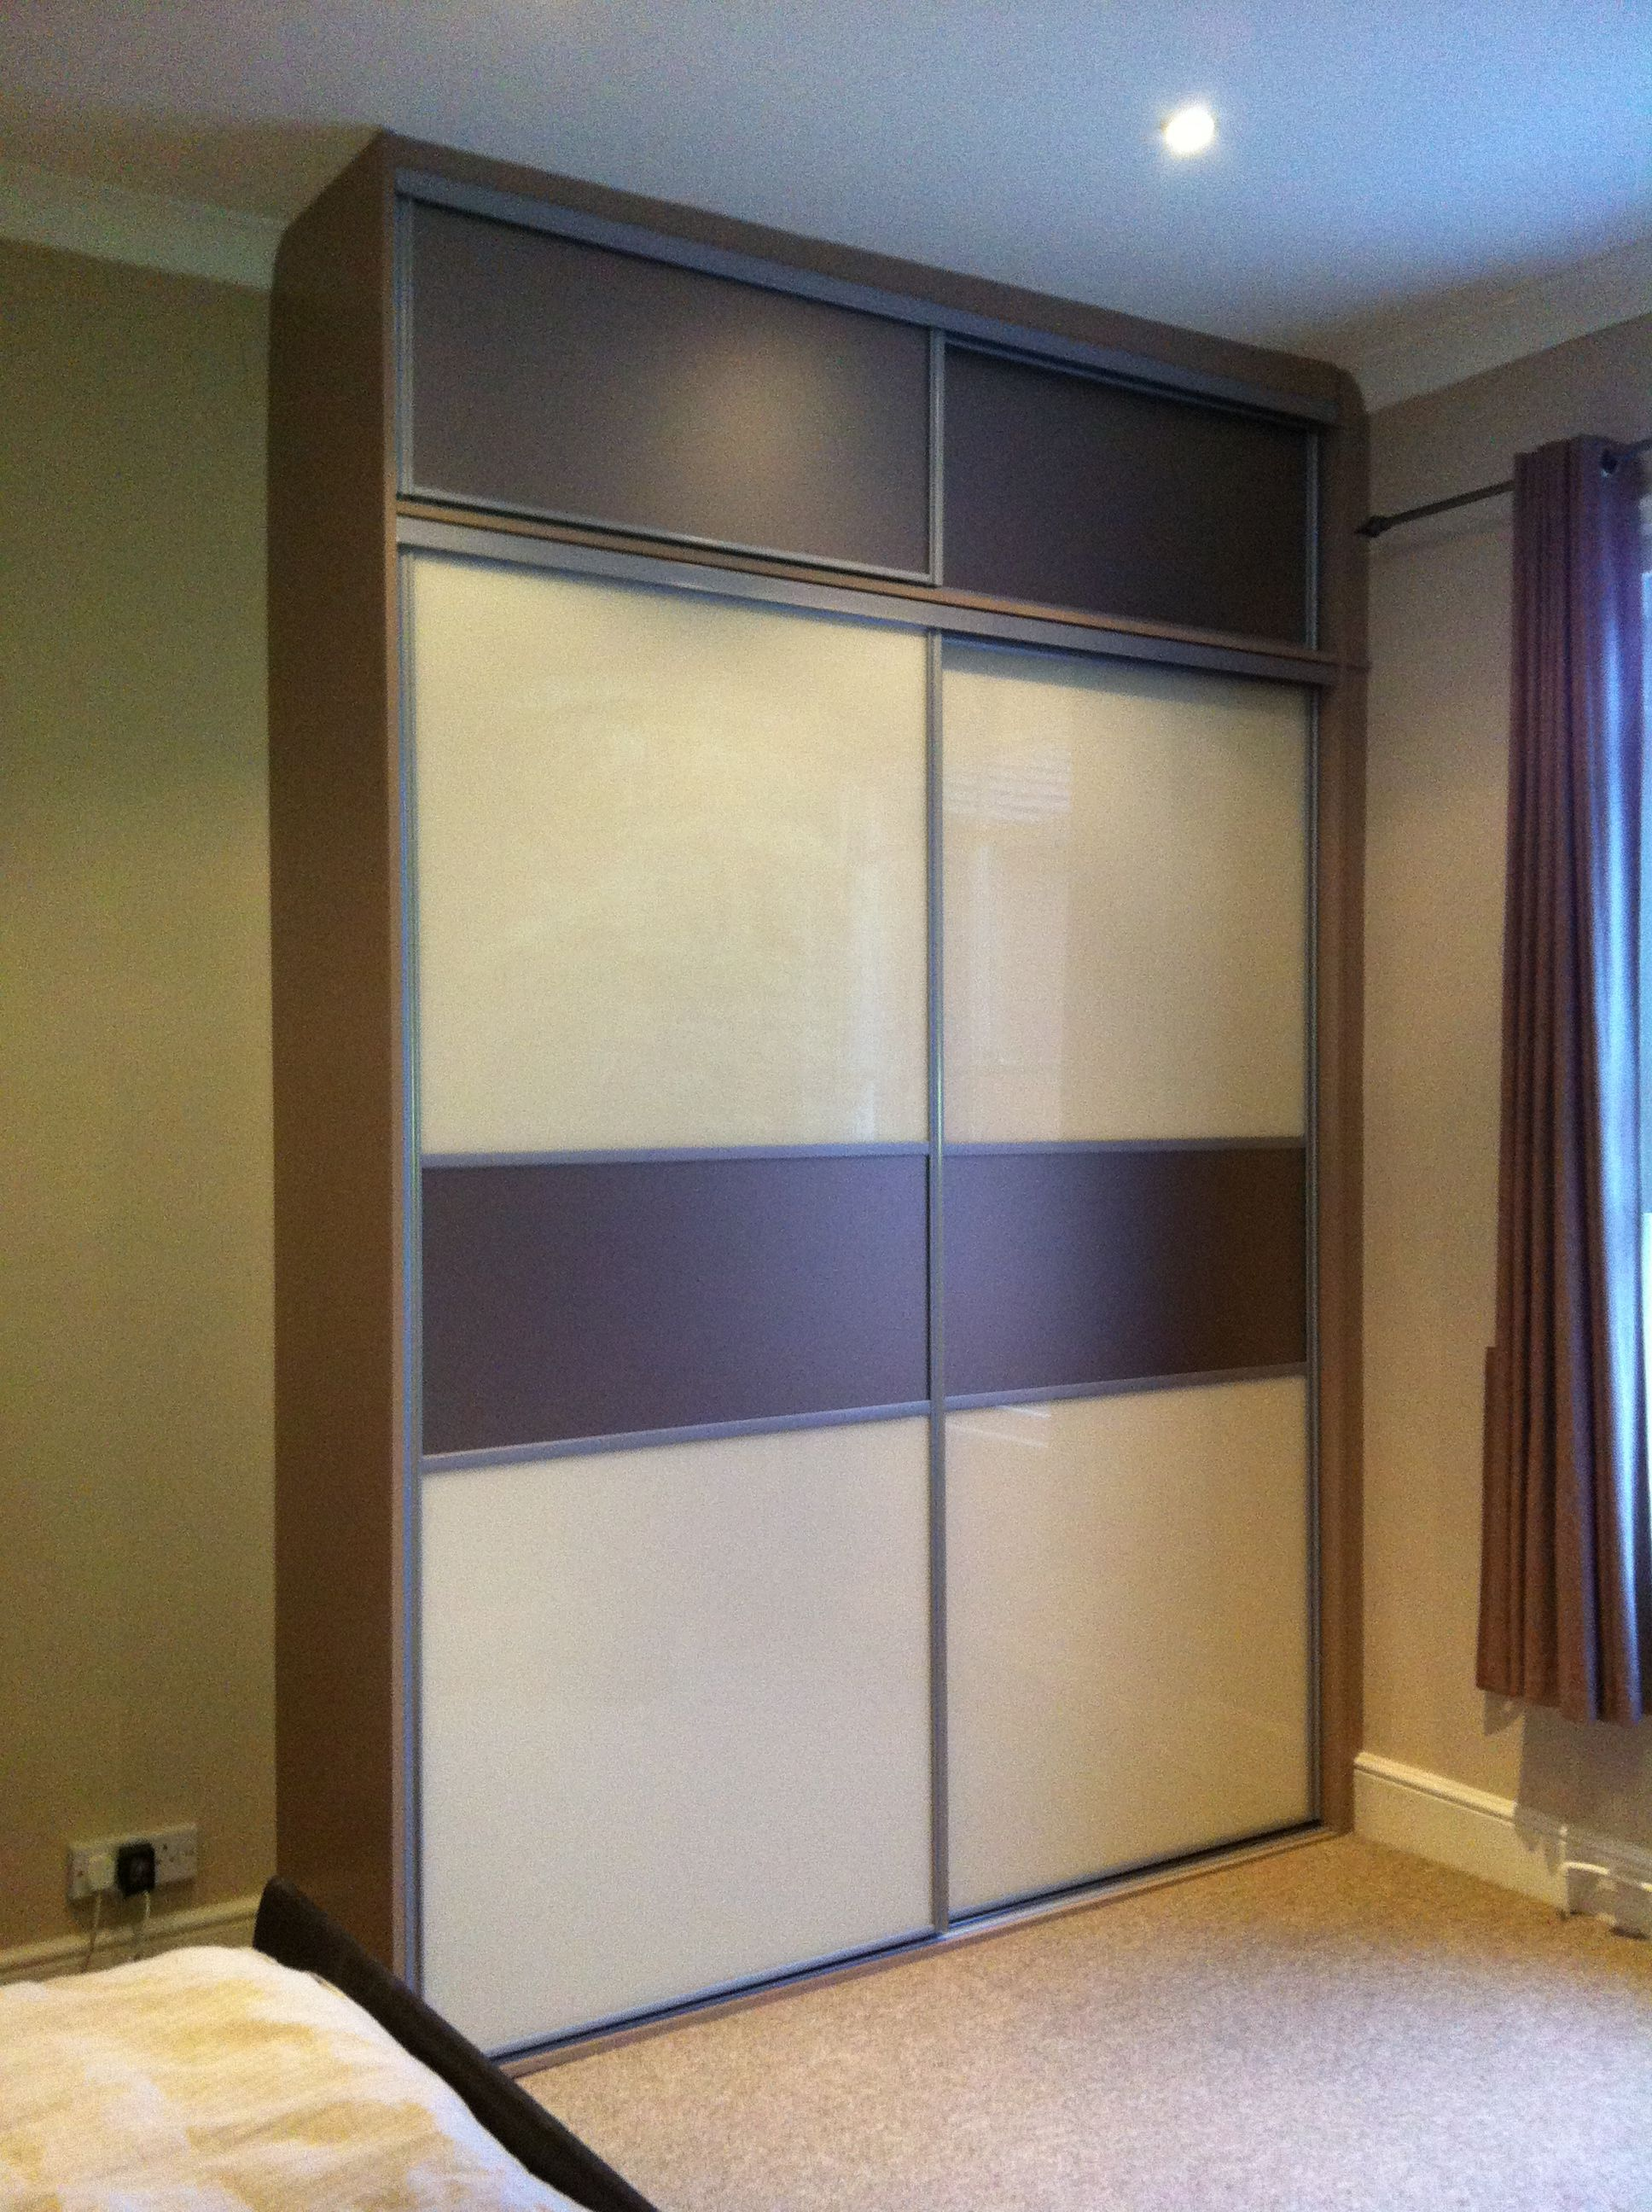 One Of Our Bespoke Sliding Door Wardrobes, Our Brand Of